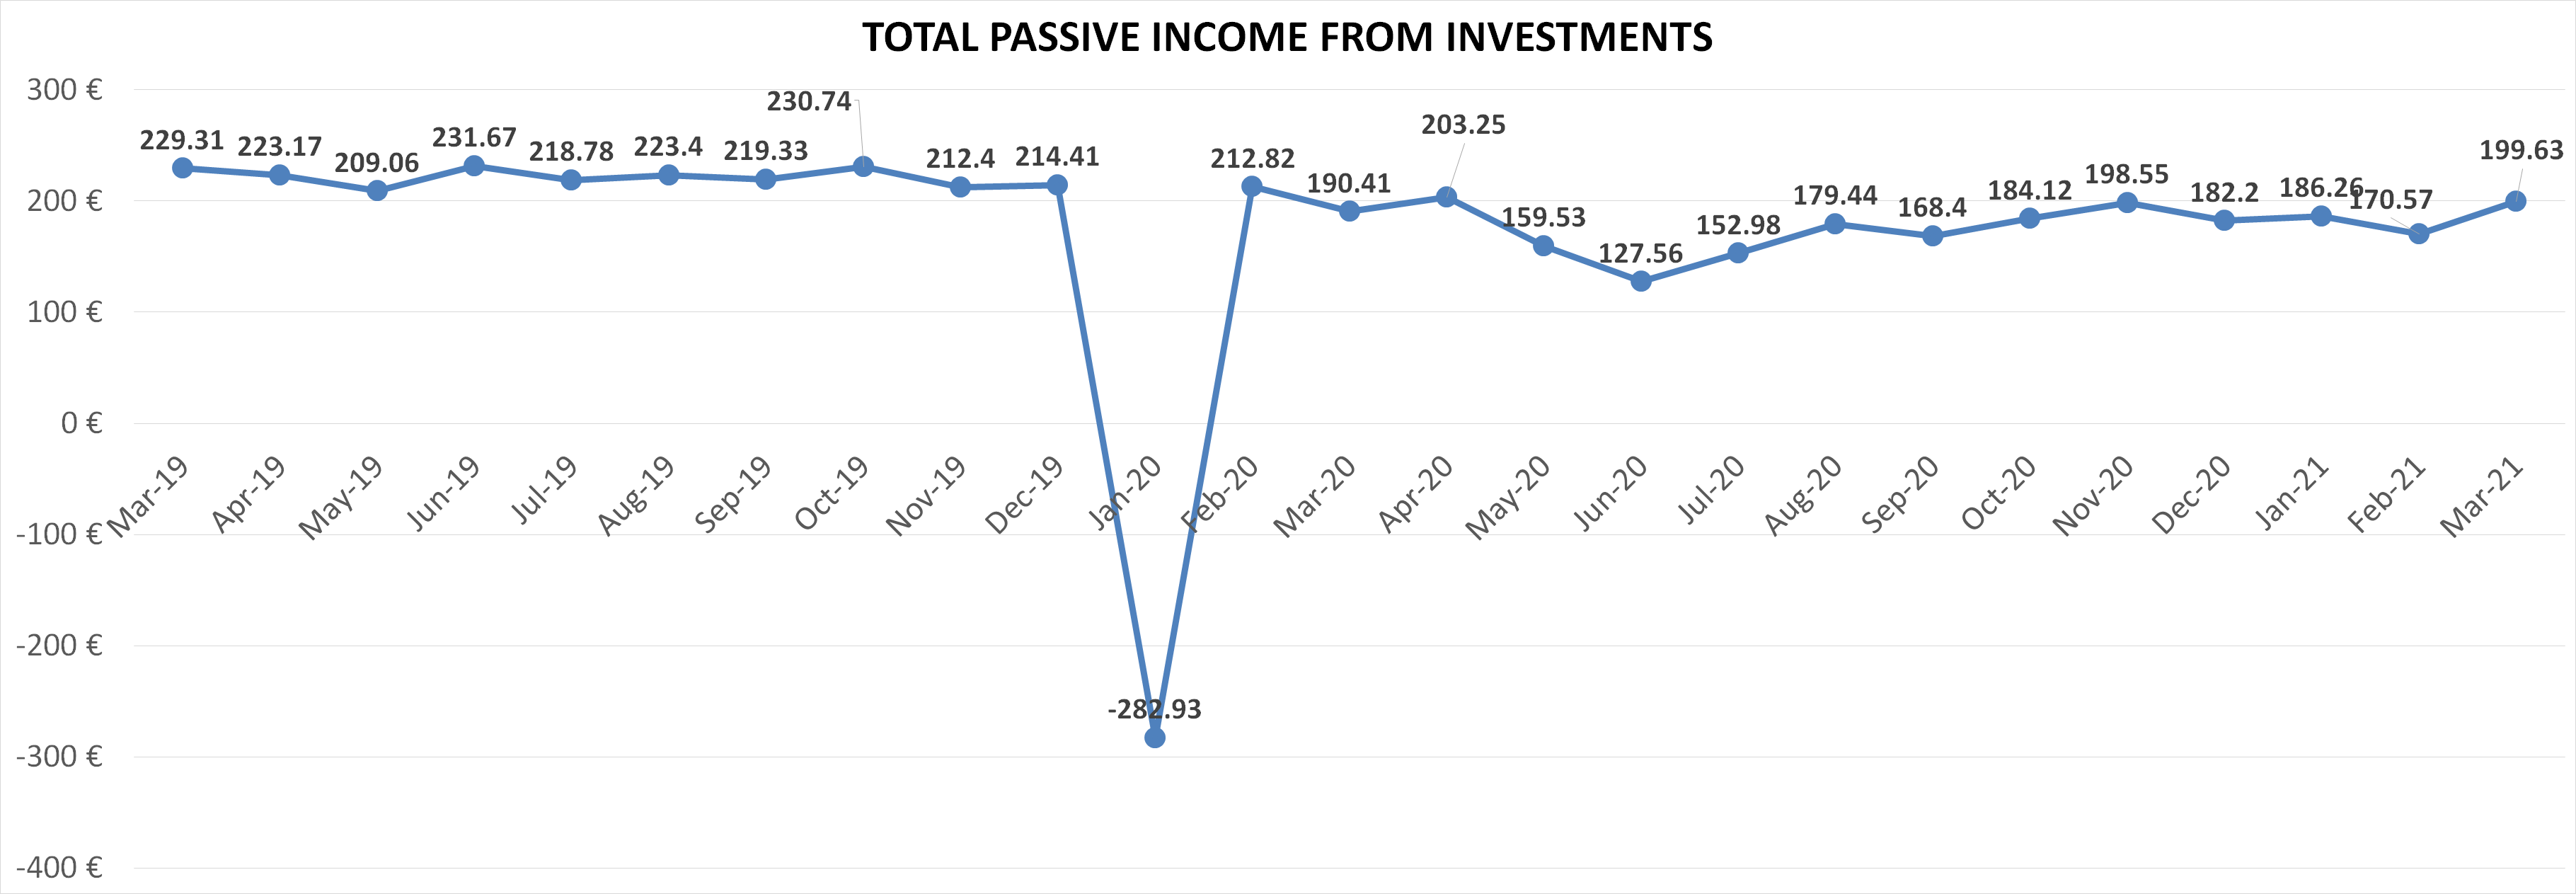 Total passive income from investments march 2021